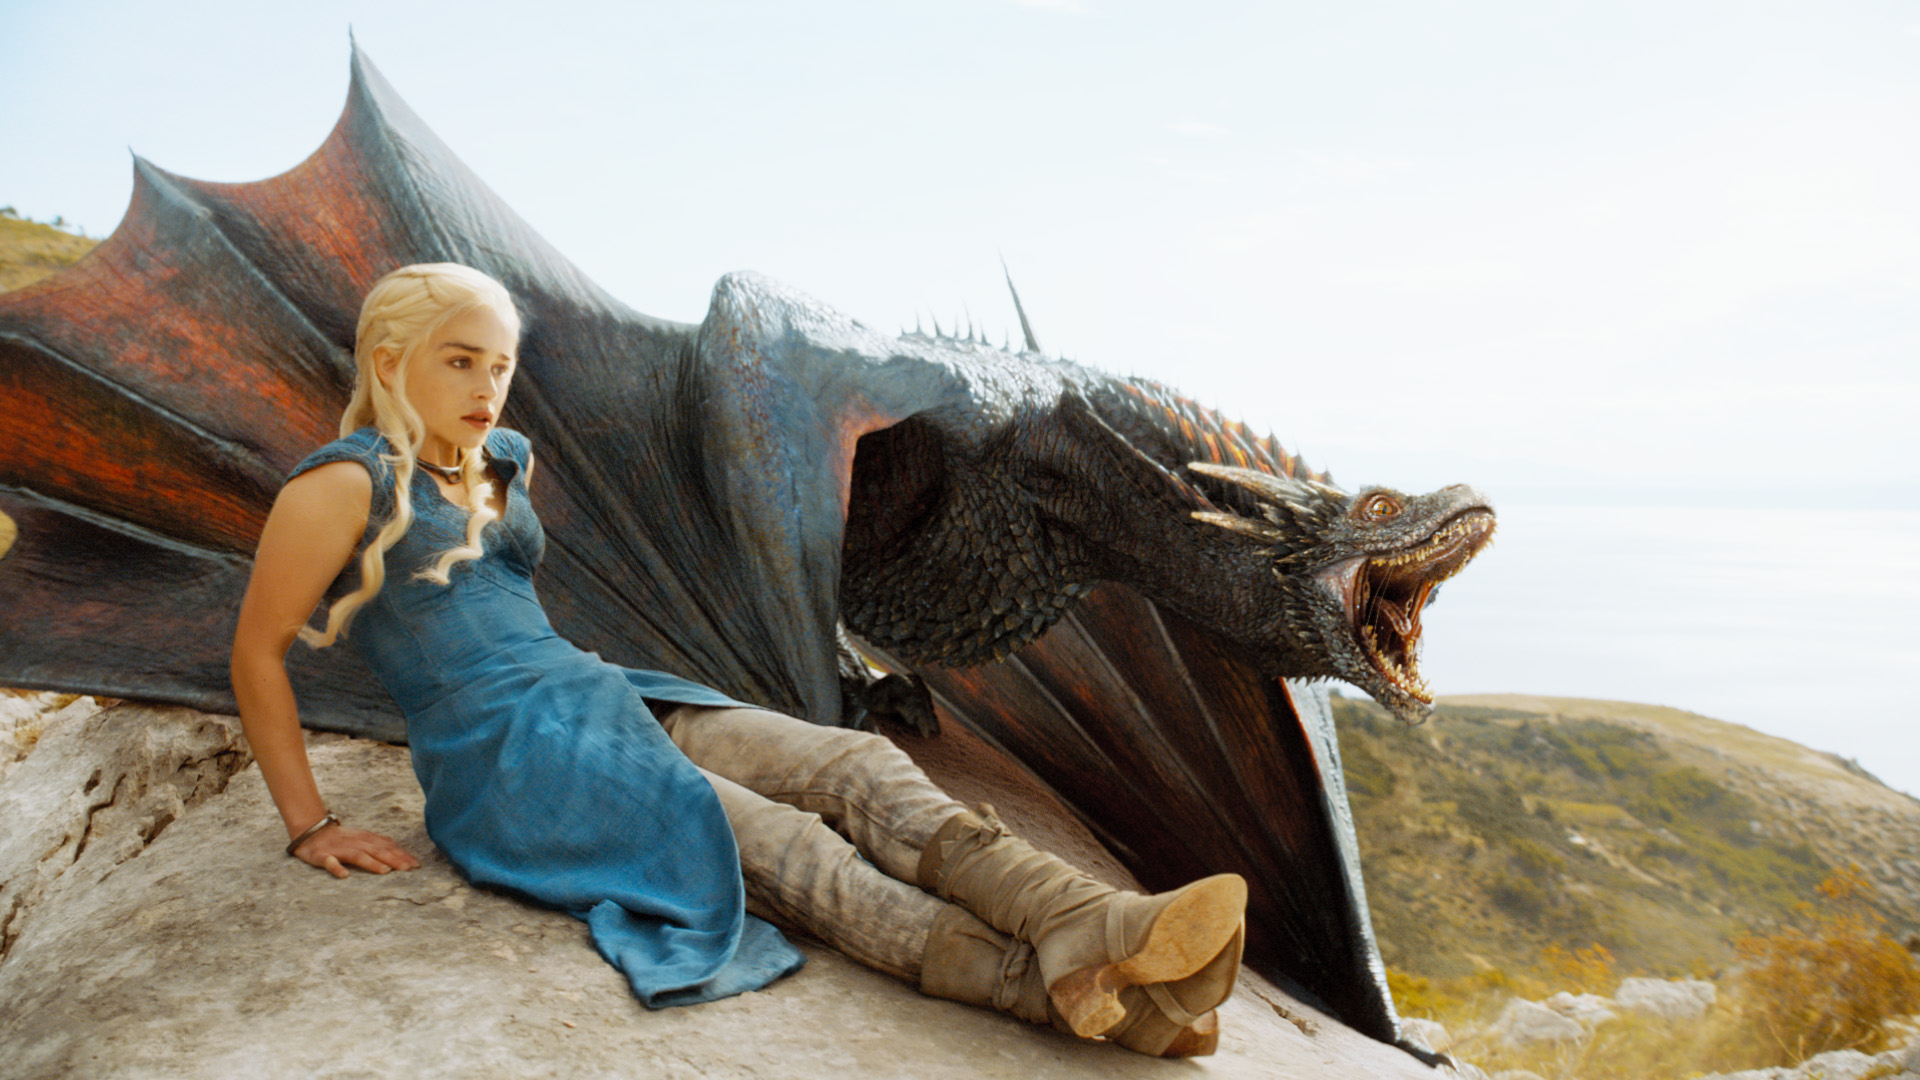 game de thrones, série tv, daenerys targaryen, dragon, emilia clarke